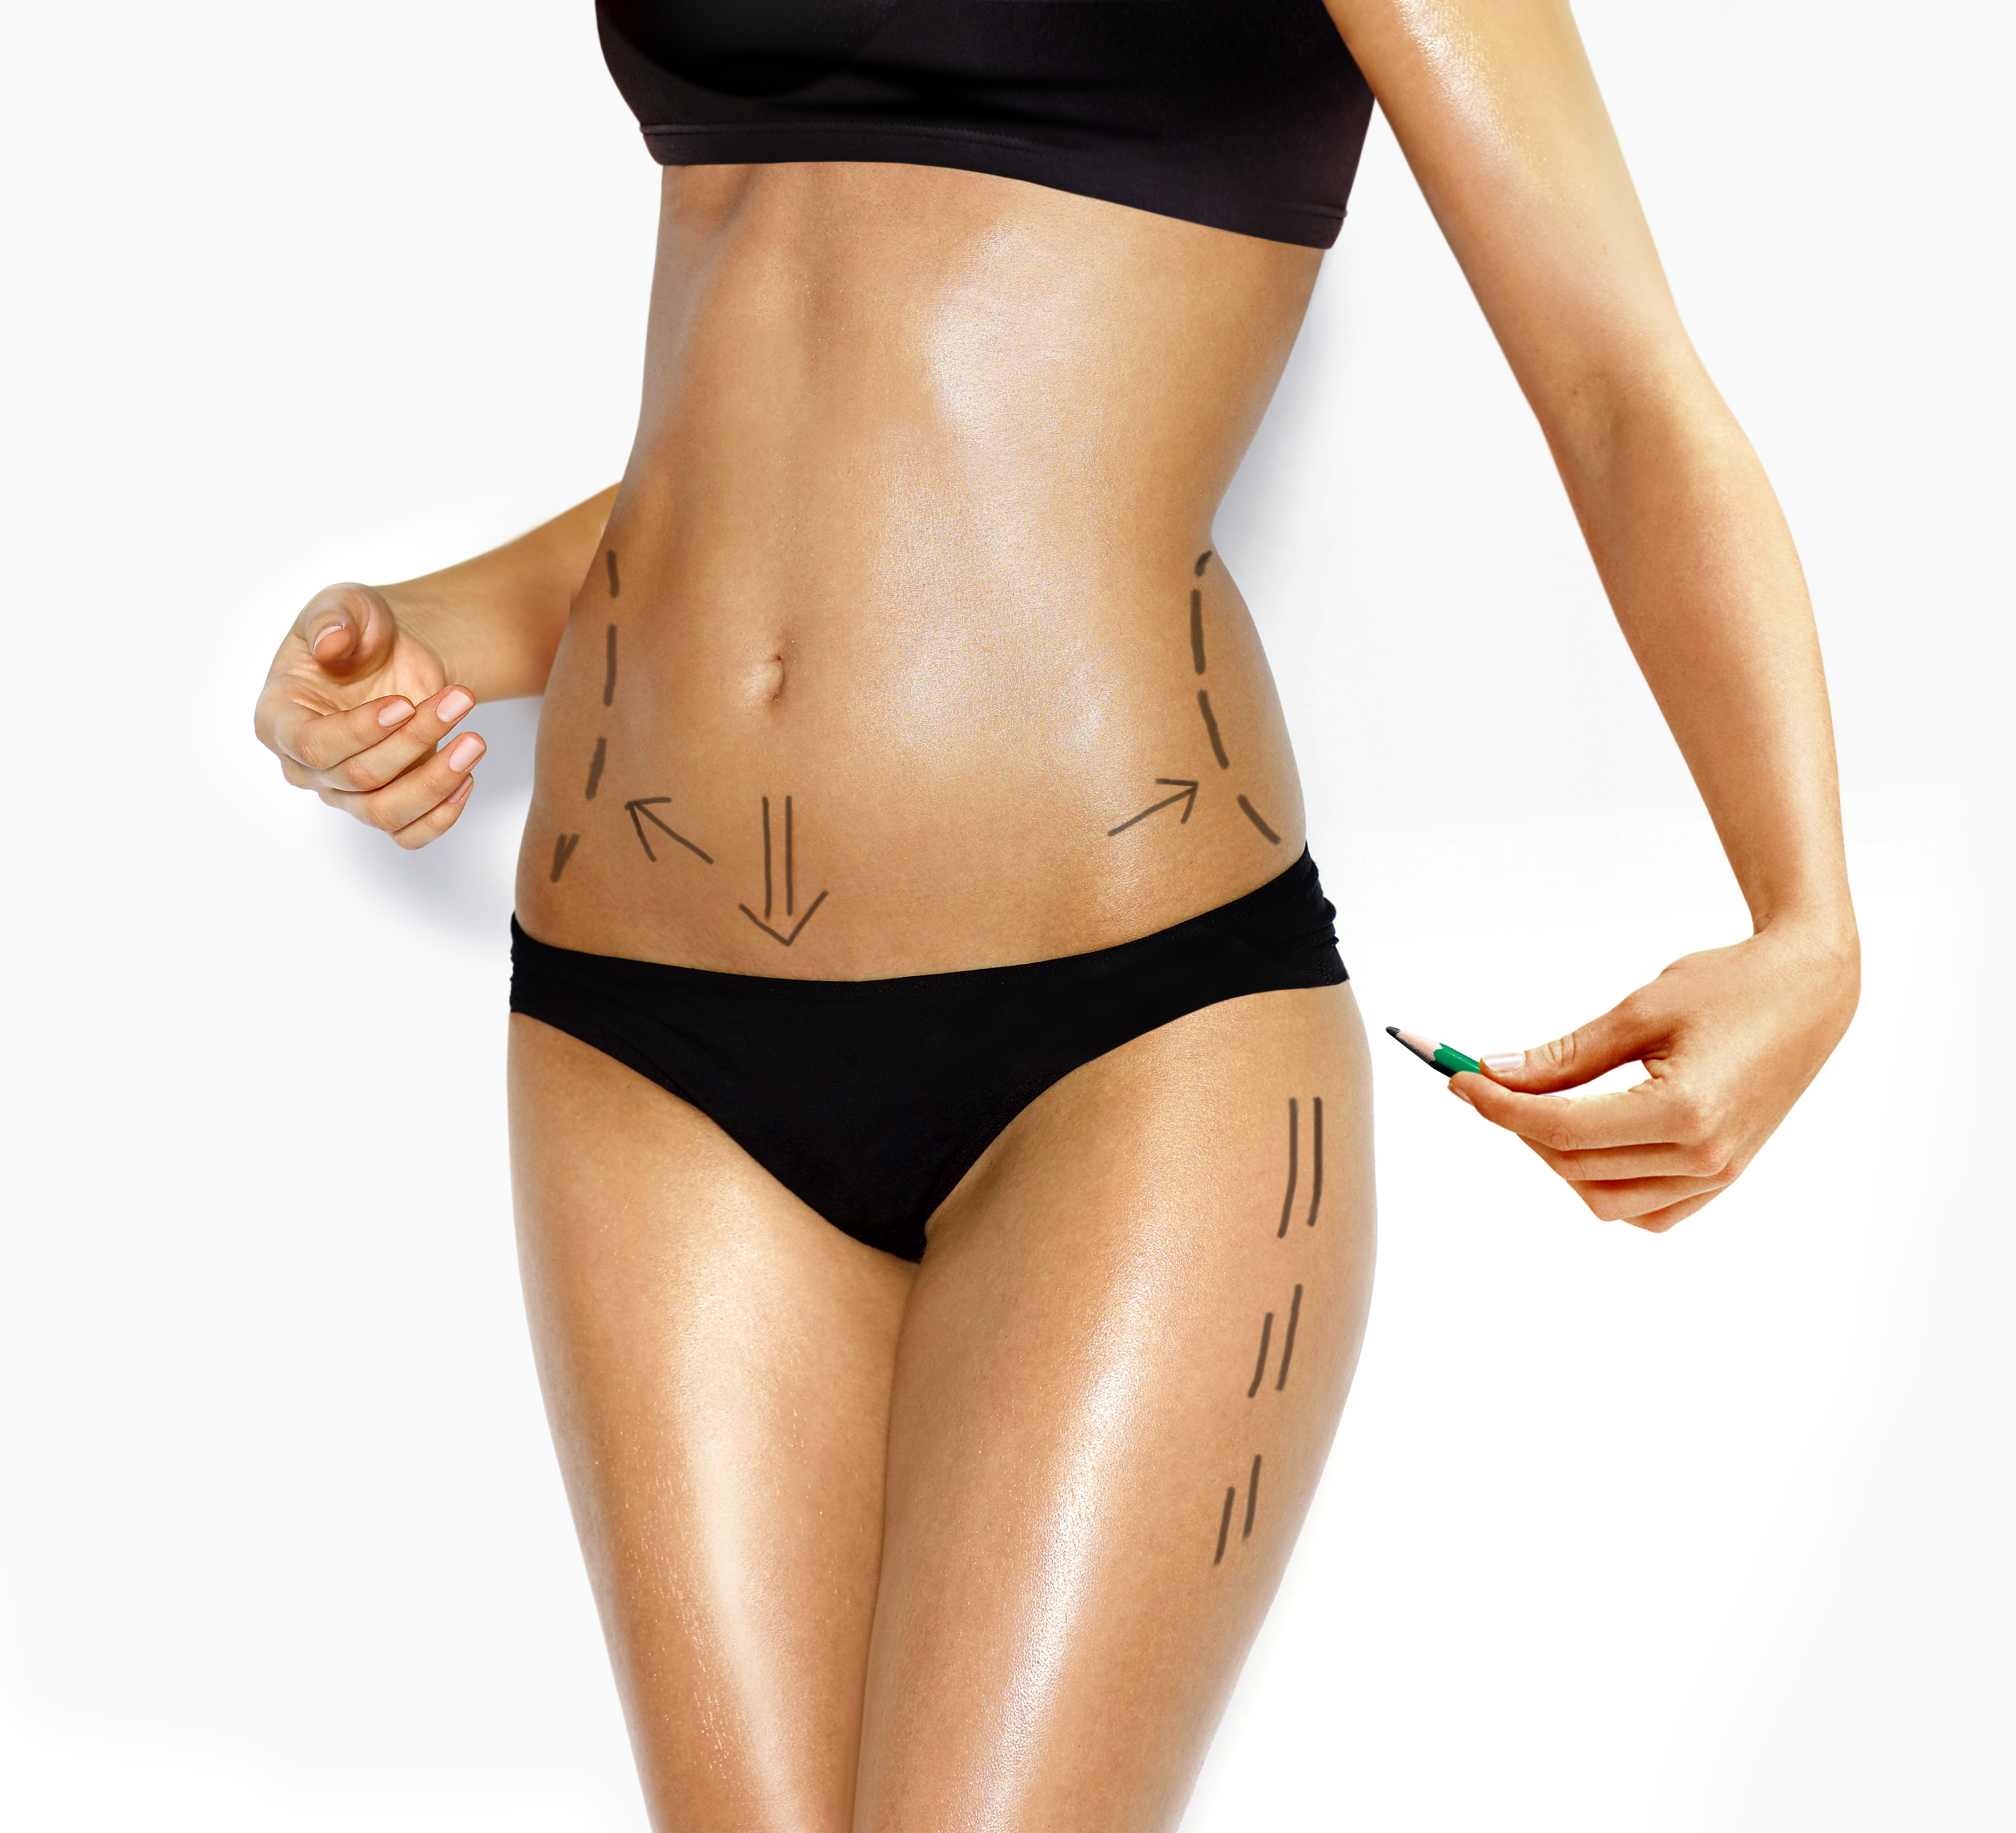 attractive Caucasian woman's abdomen and legs marked with lines for abdominal cellulite correction cosmetic surgery